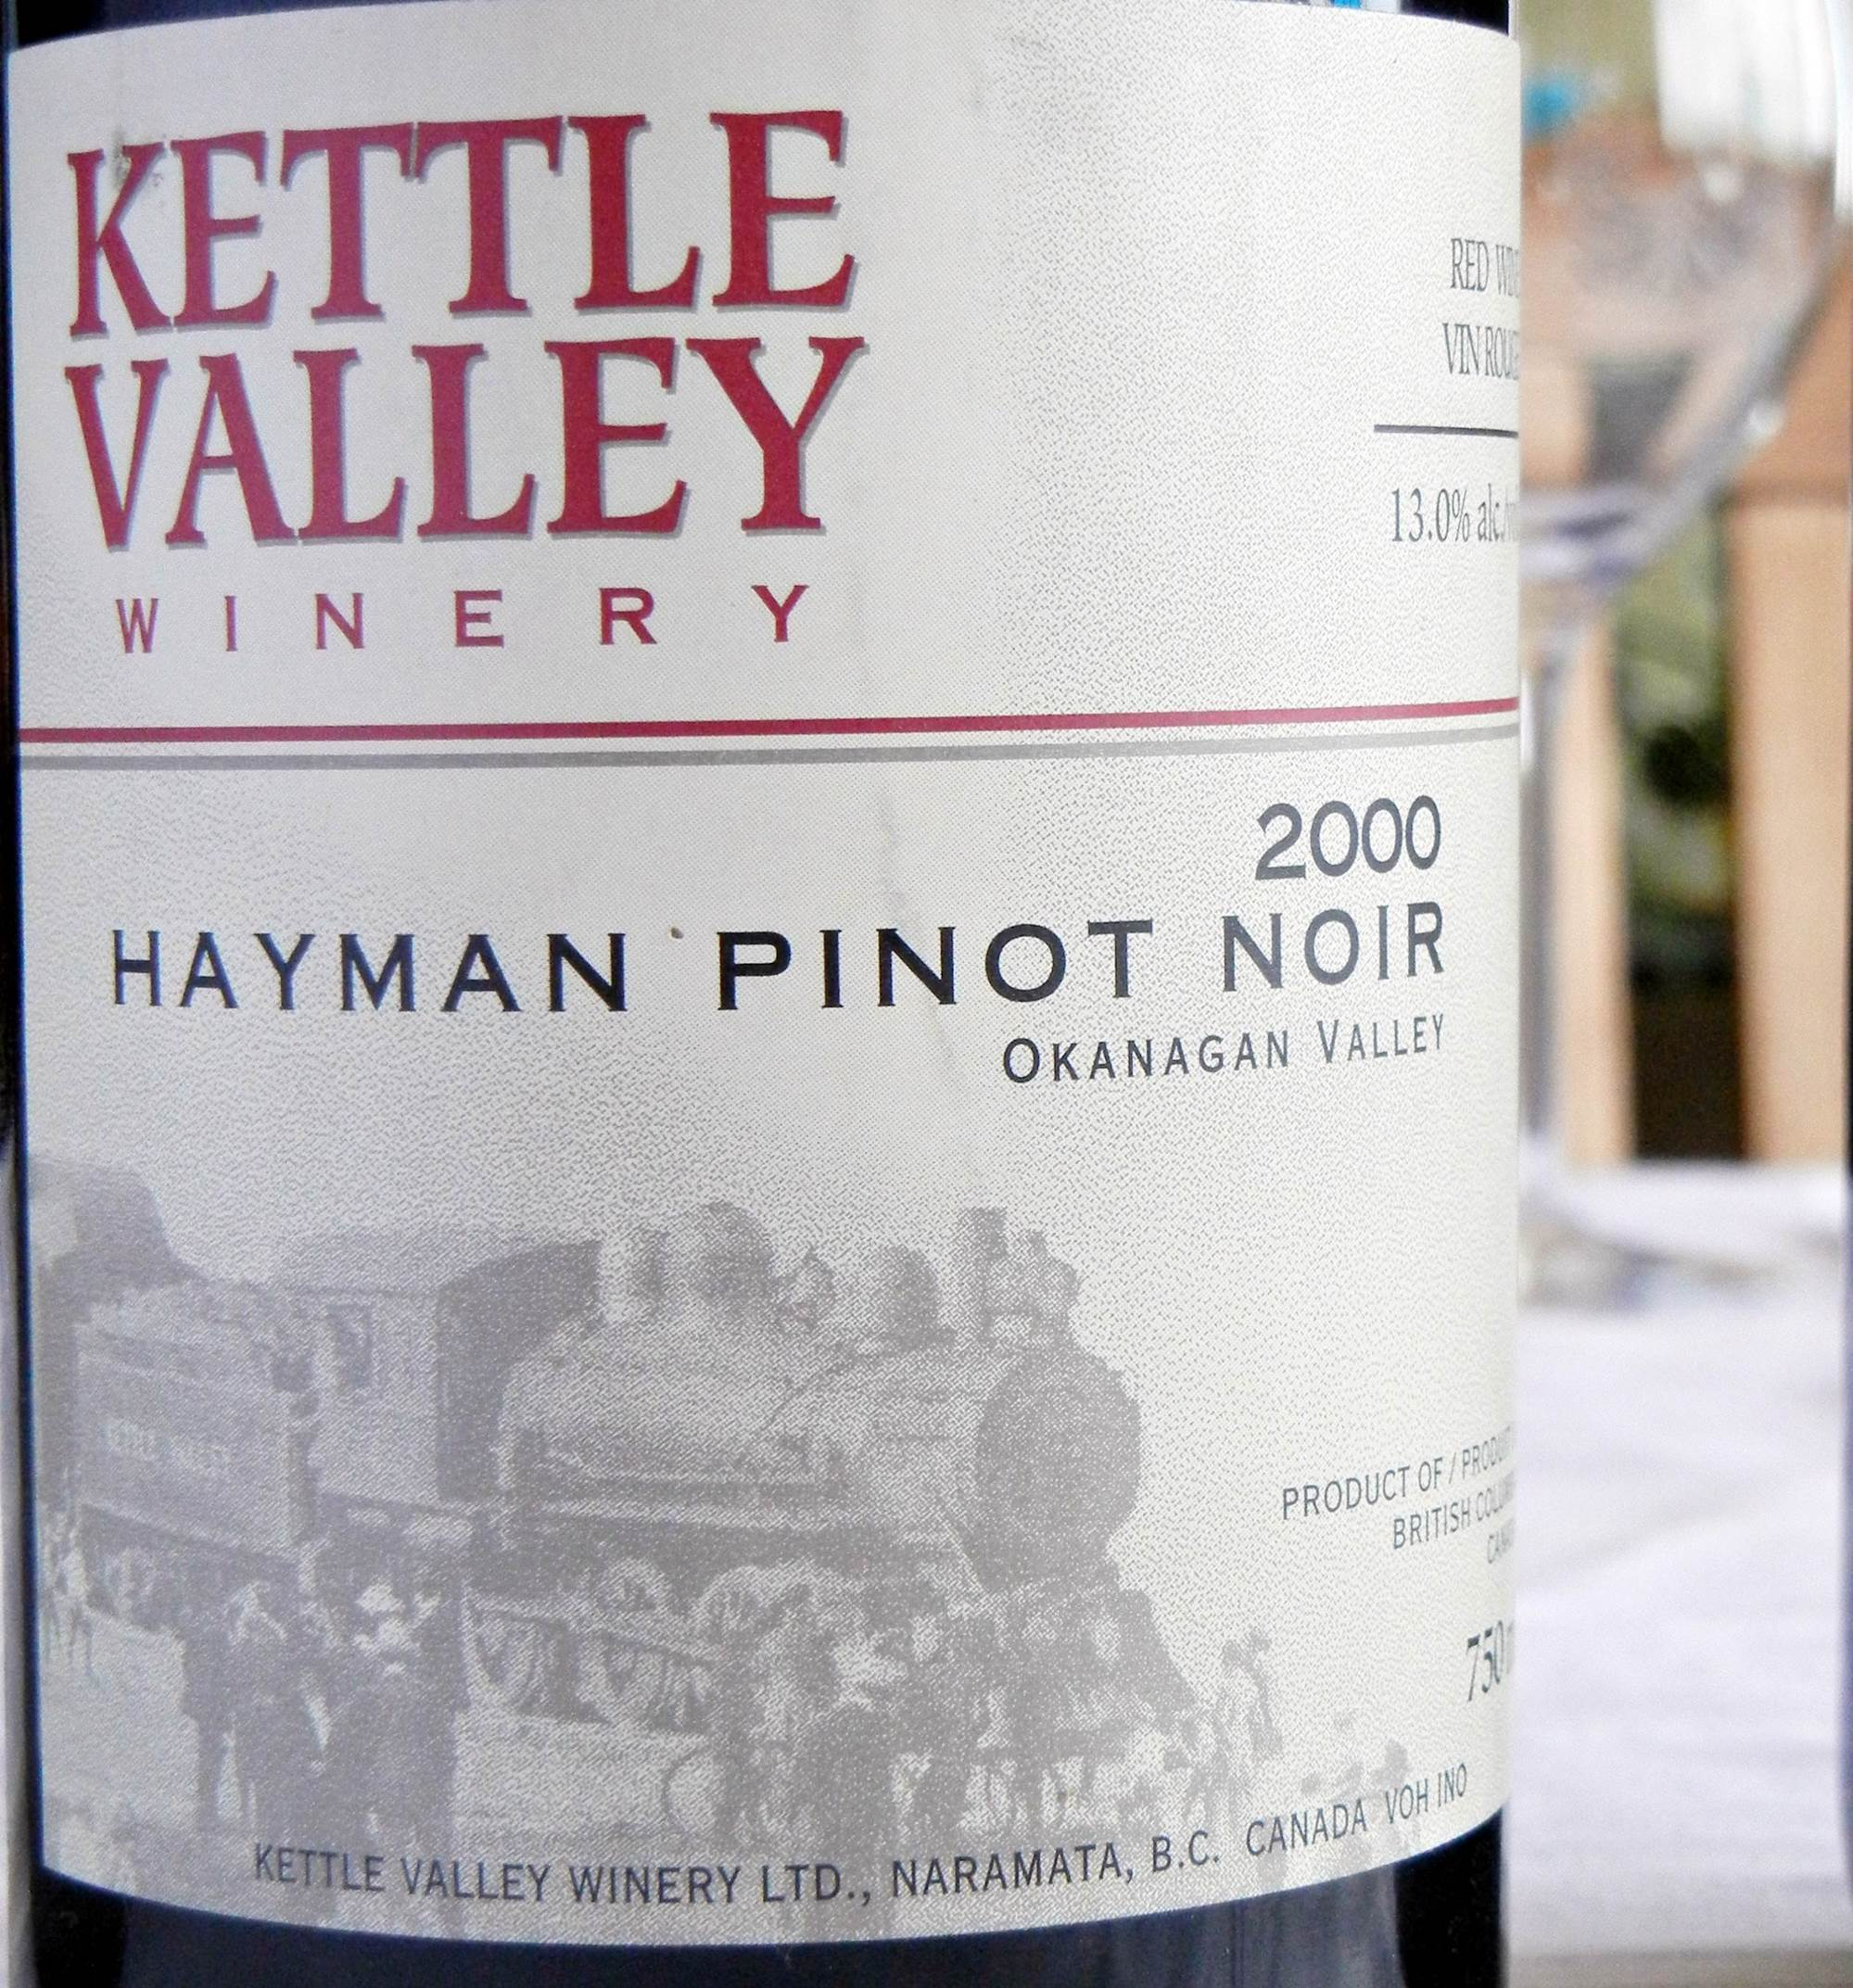 Kettle Valley Hayman Pinot Noir 2000 Label - BC Pinot Noir Tasting Review 25